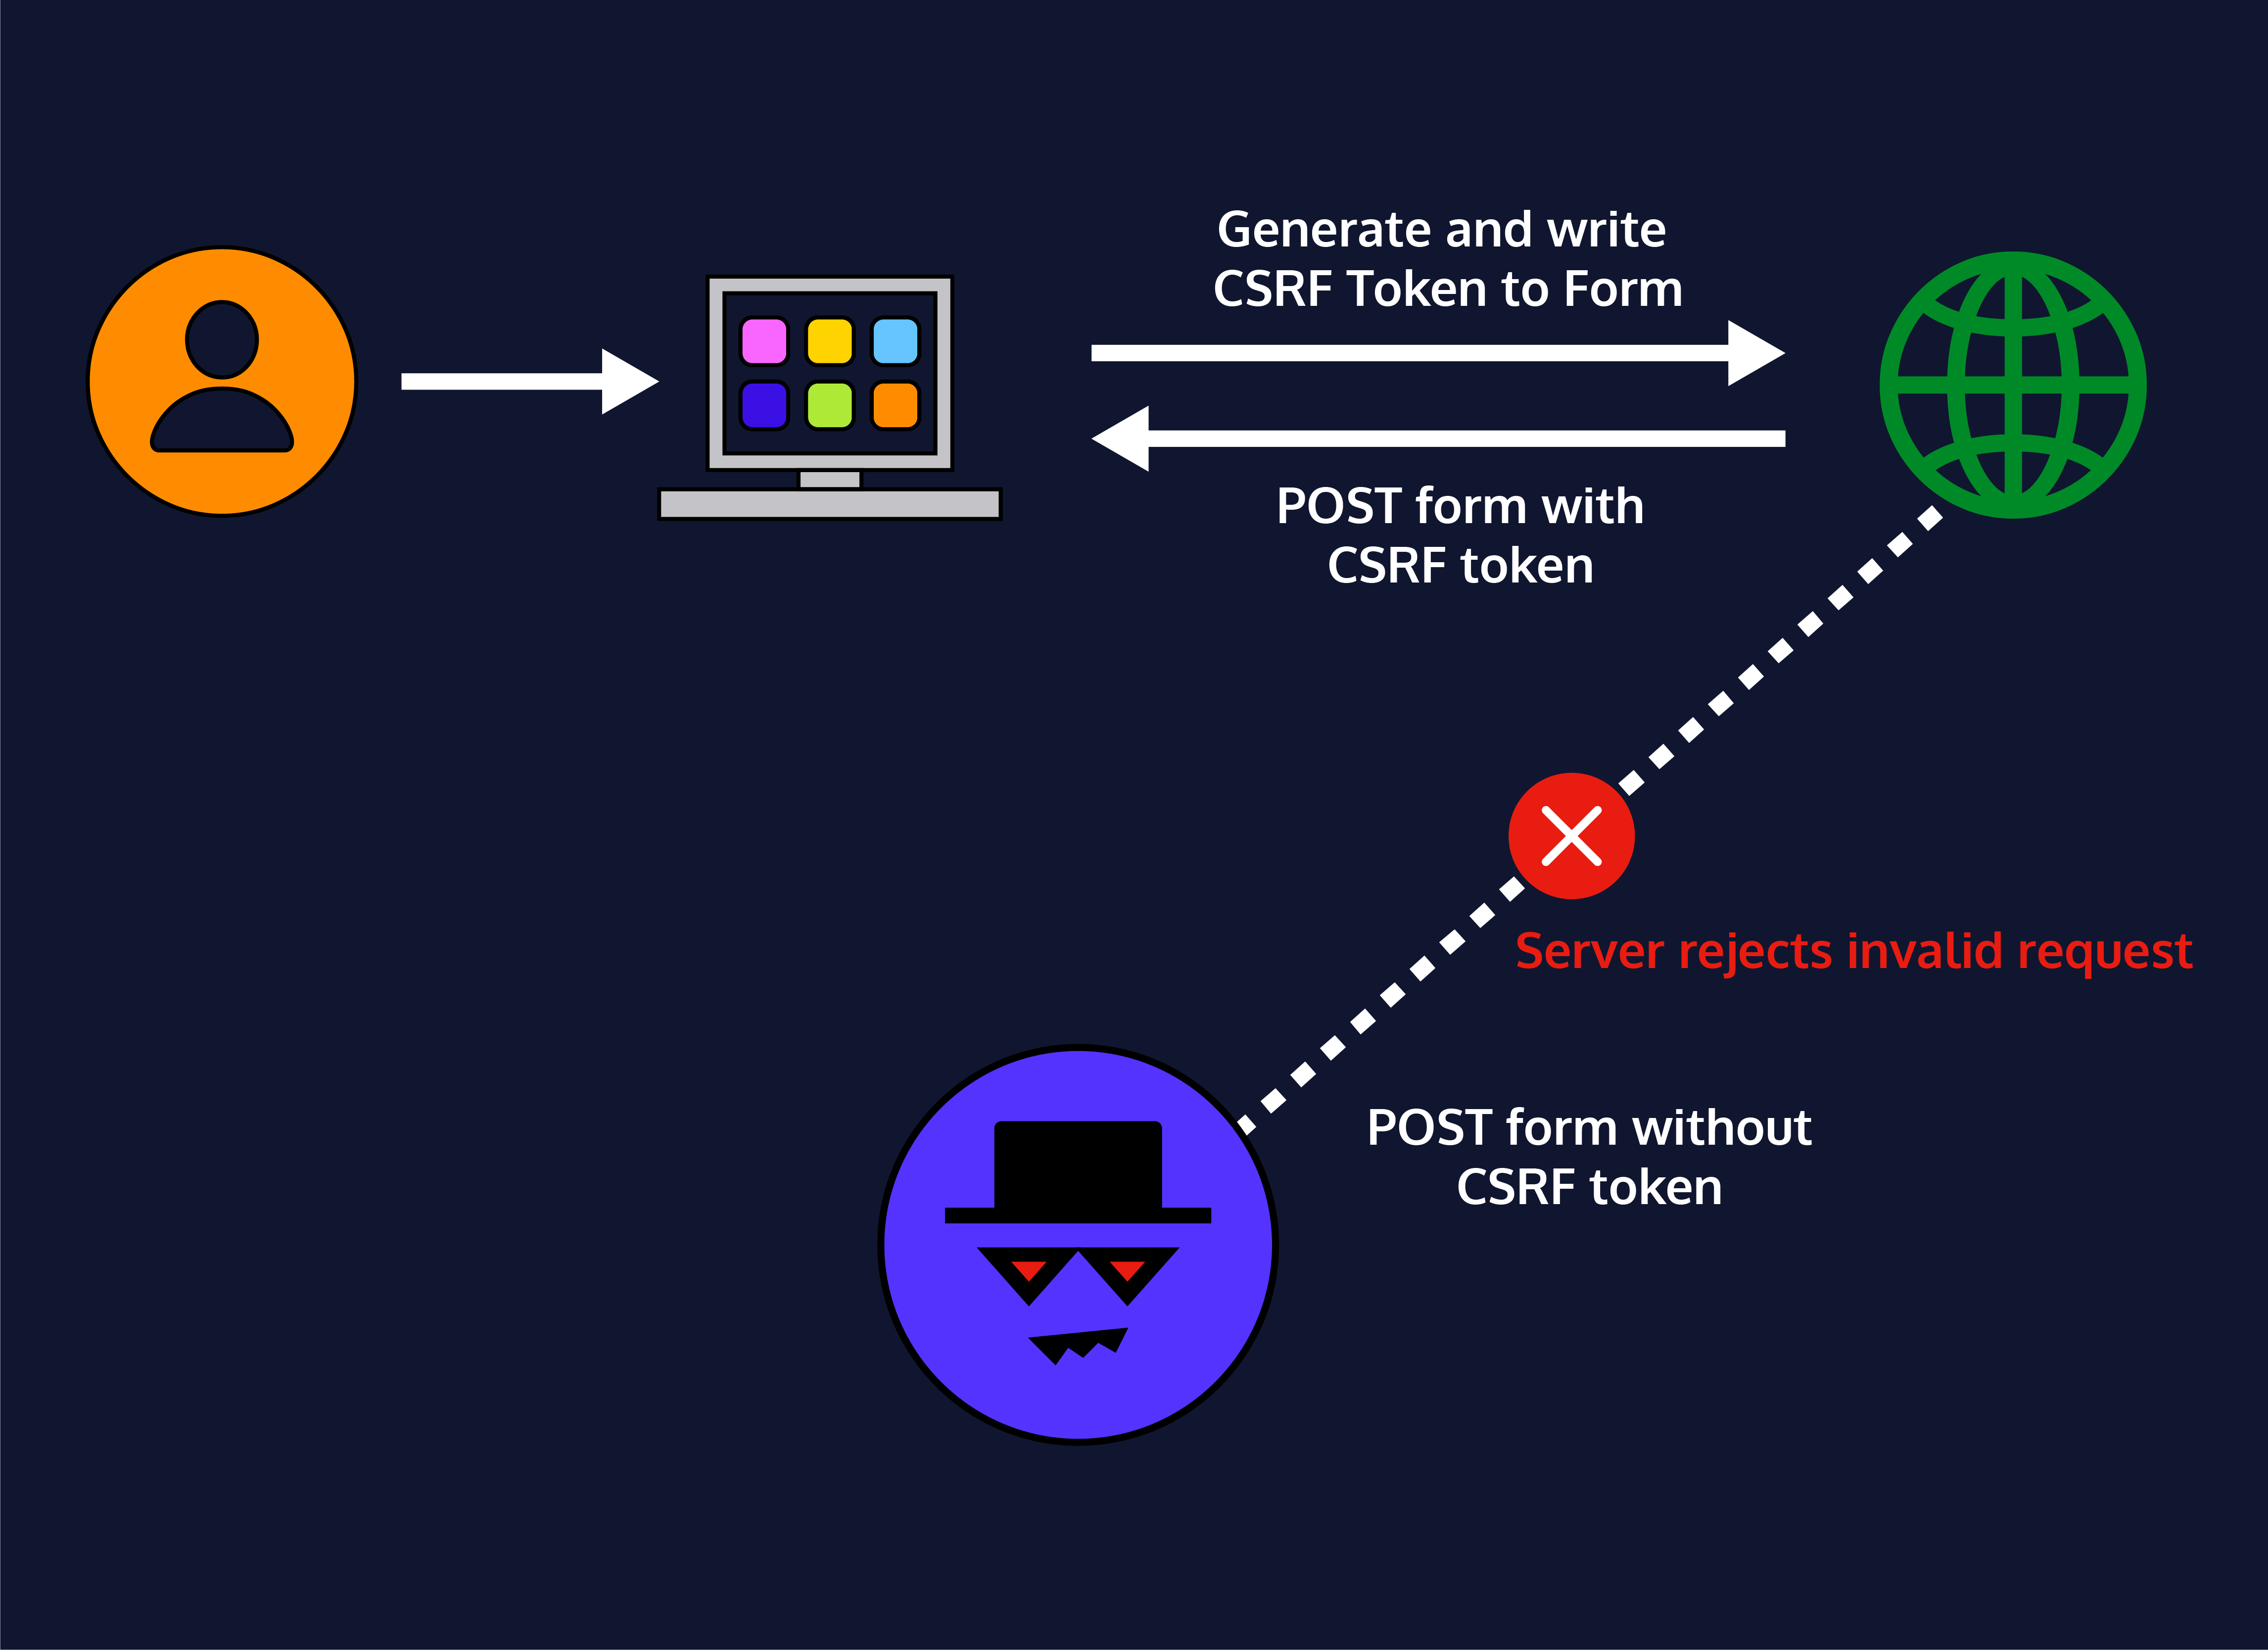 A user is able to send a request through to a web application after a valid check on a CSRF token. An attacker who is attempting to make a CSRF attack via the user does not pass the token check, and fails to force the user through the same request.